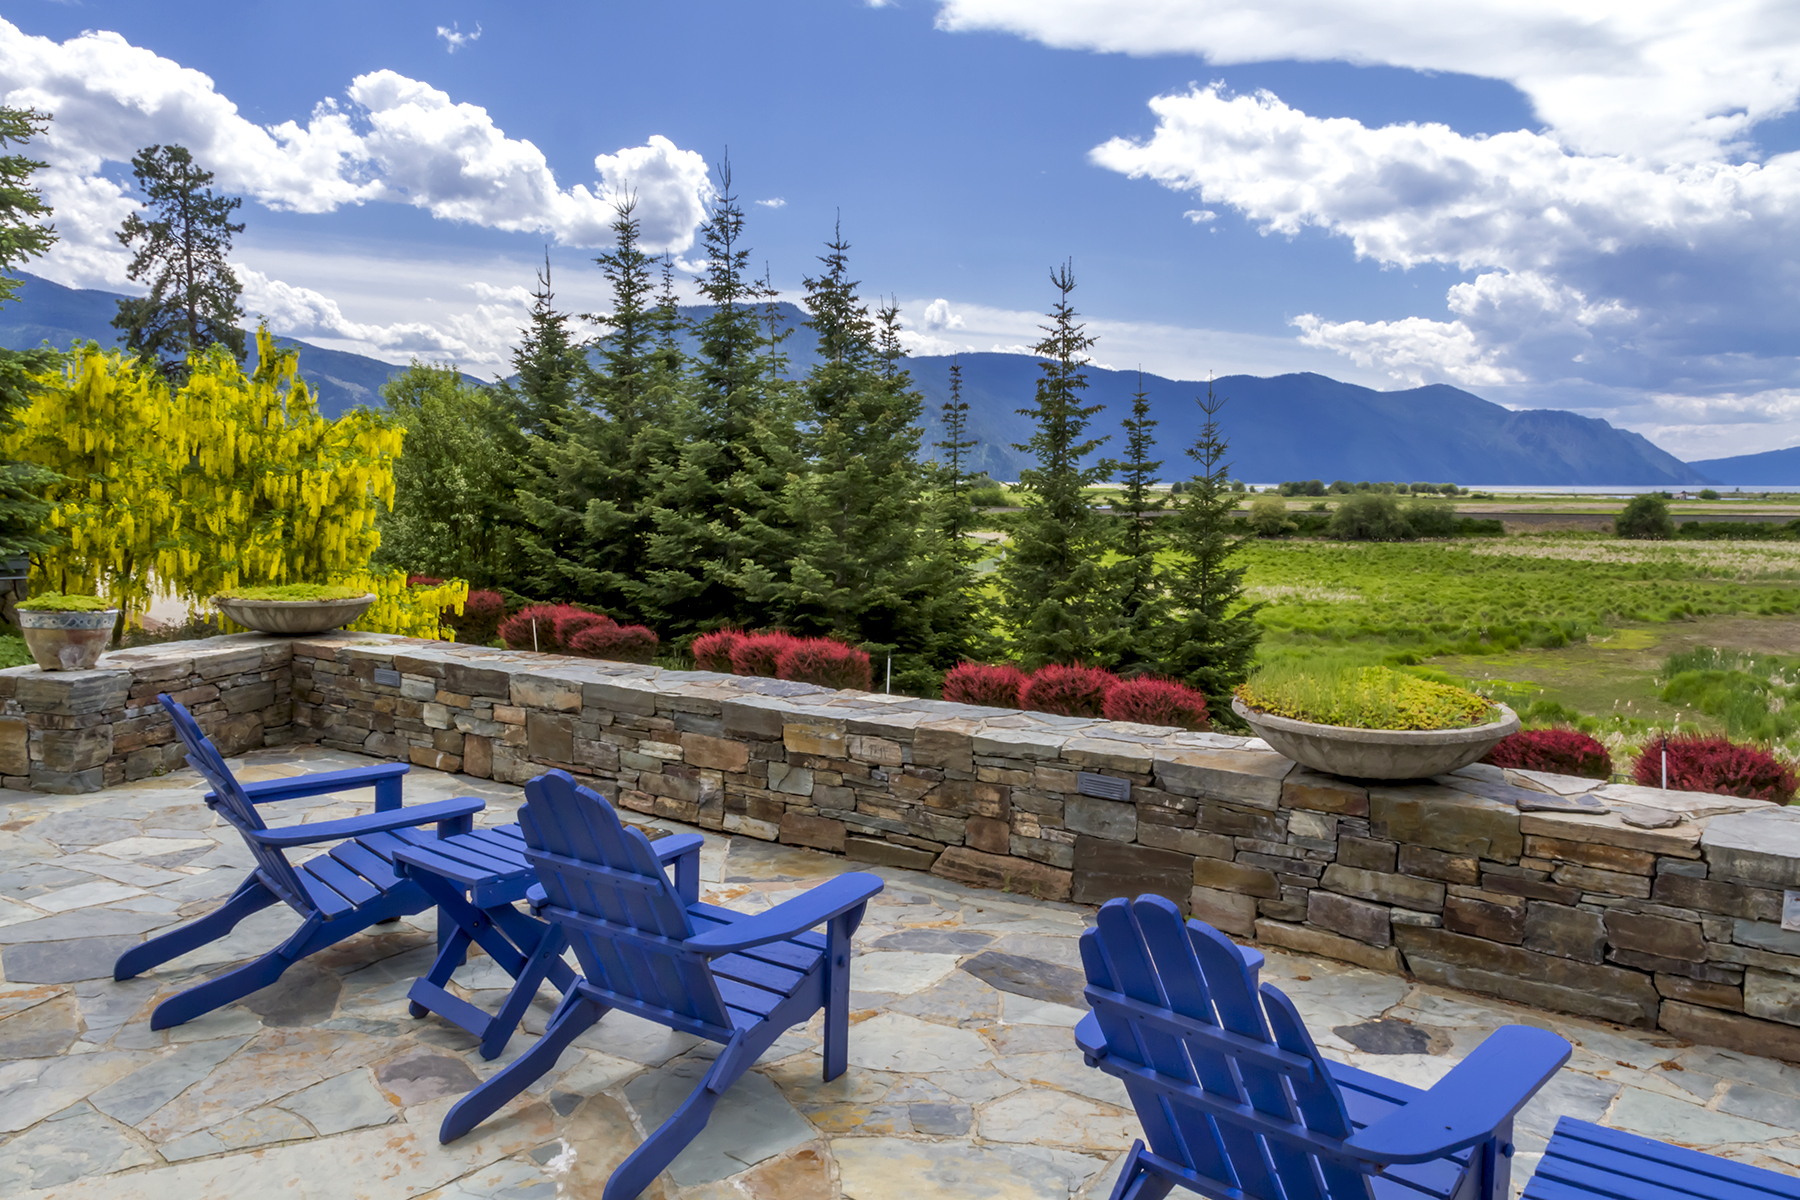 Single Family Home for Sale at Clark Fork River Delta Estate 52010 Hwy 200 Clark Fork, Idaho, 83811 United States